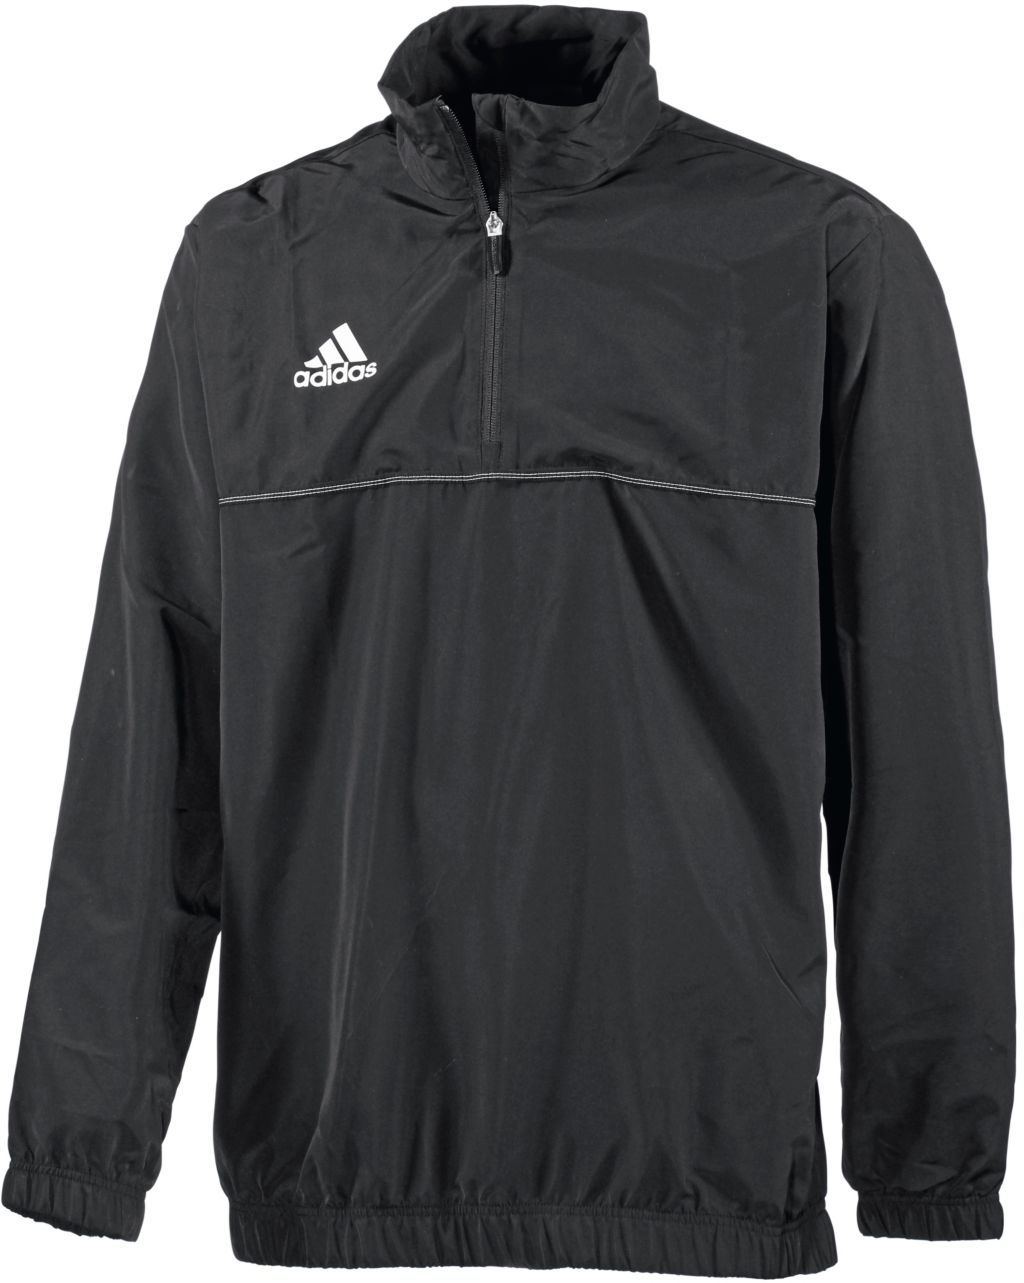 adidas colorado windbreaker preisvergleich die besten. Black Bedroom Furniture Sets. Home Design Ideas